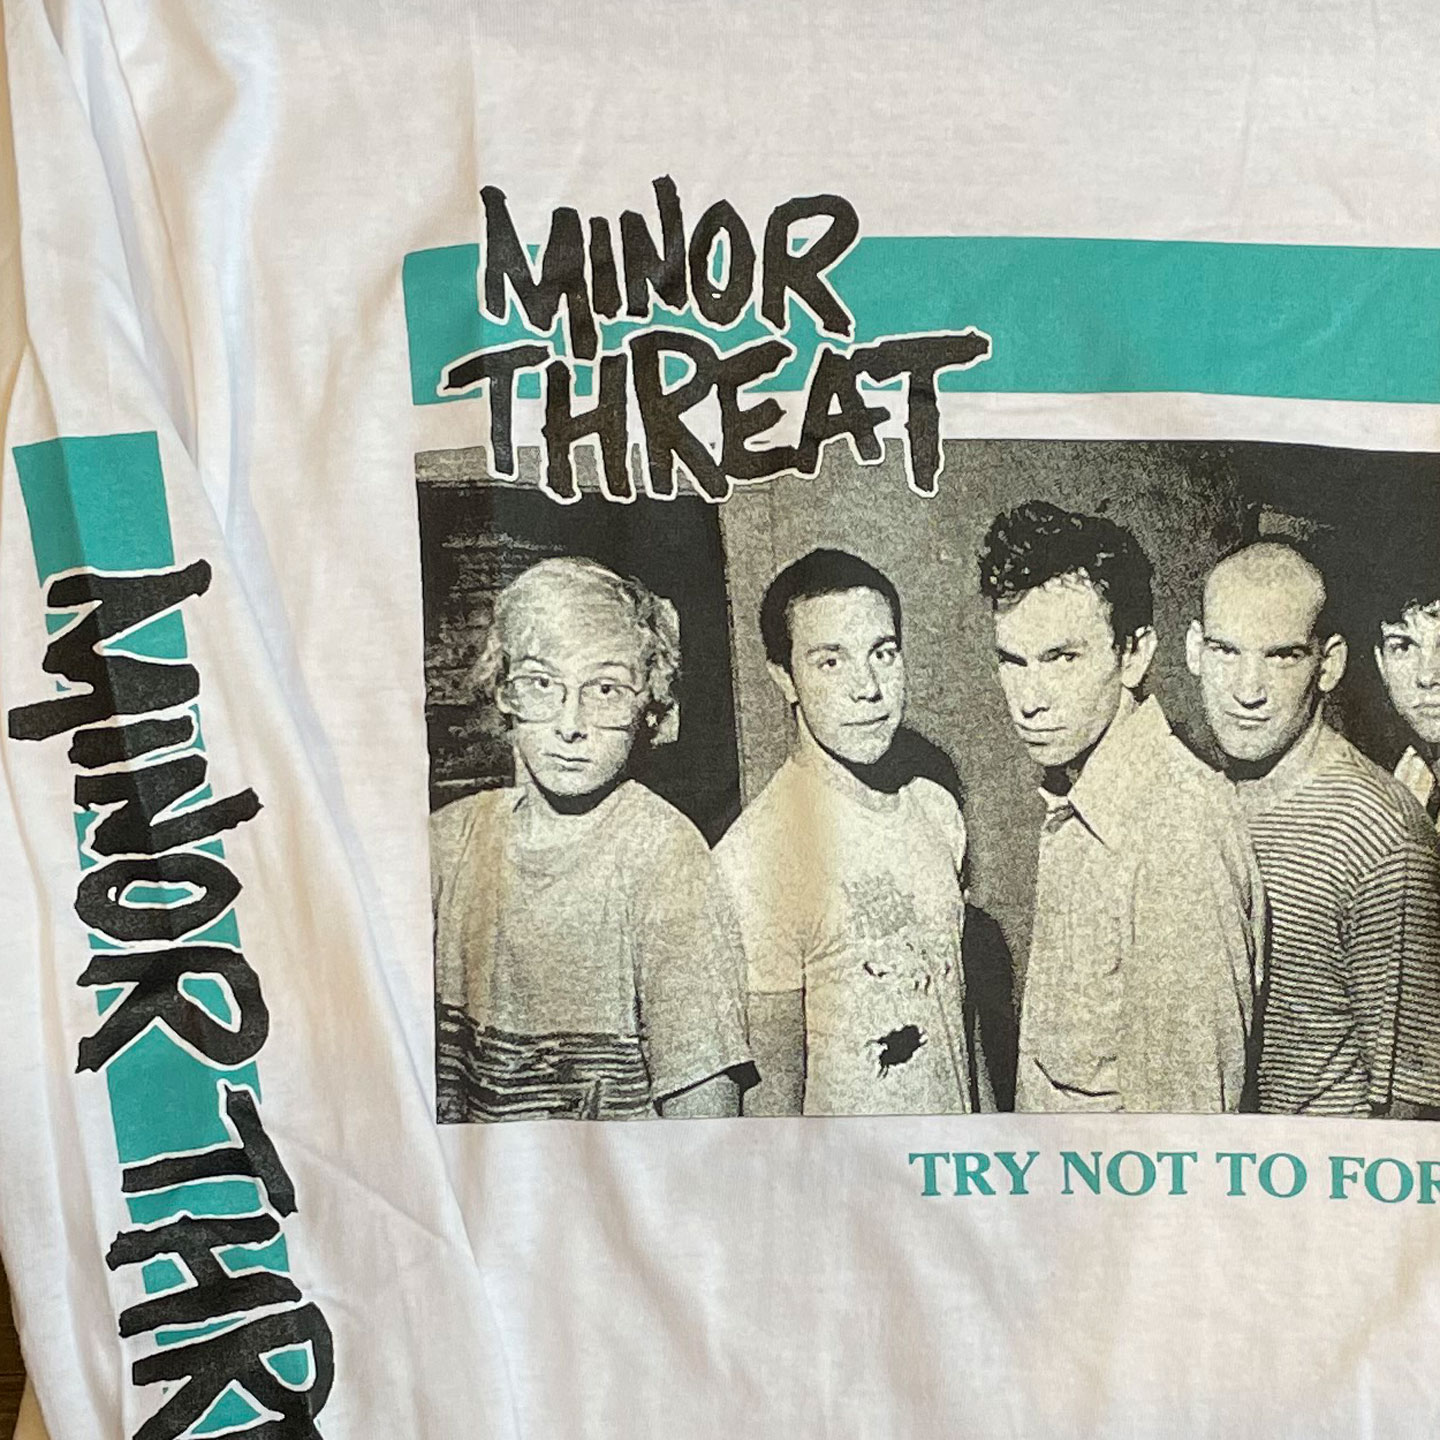 MINOR THREAT ロングスリーブTシャツ TRY NOT TO FORGET